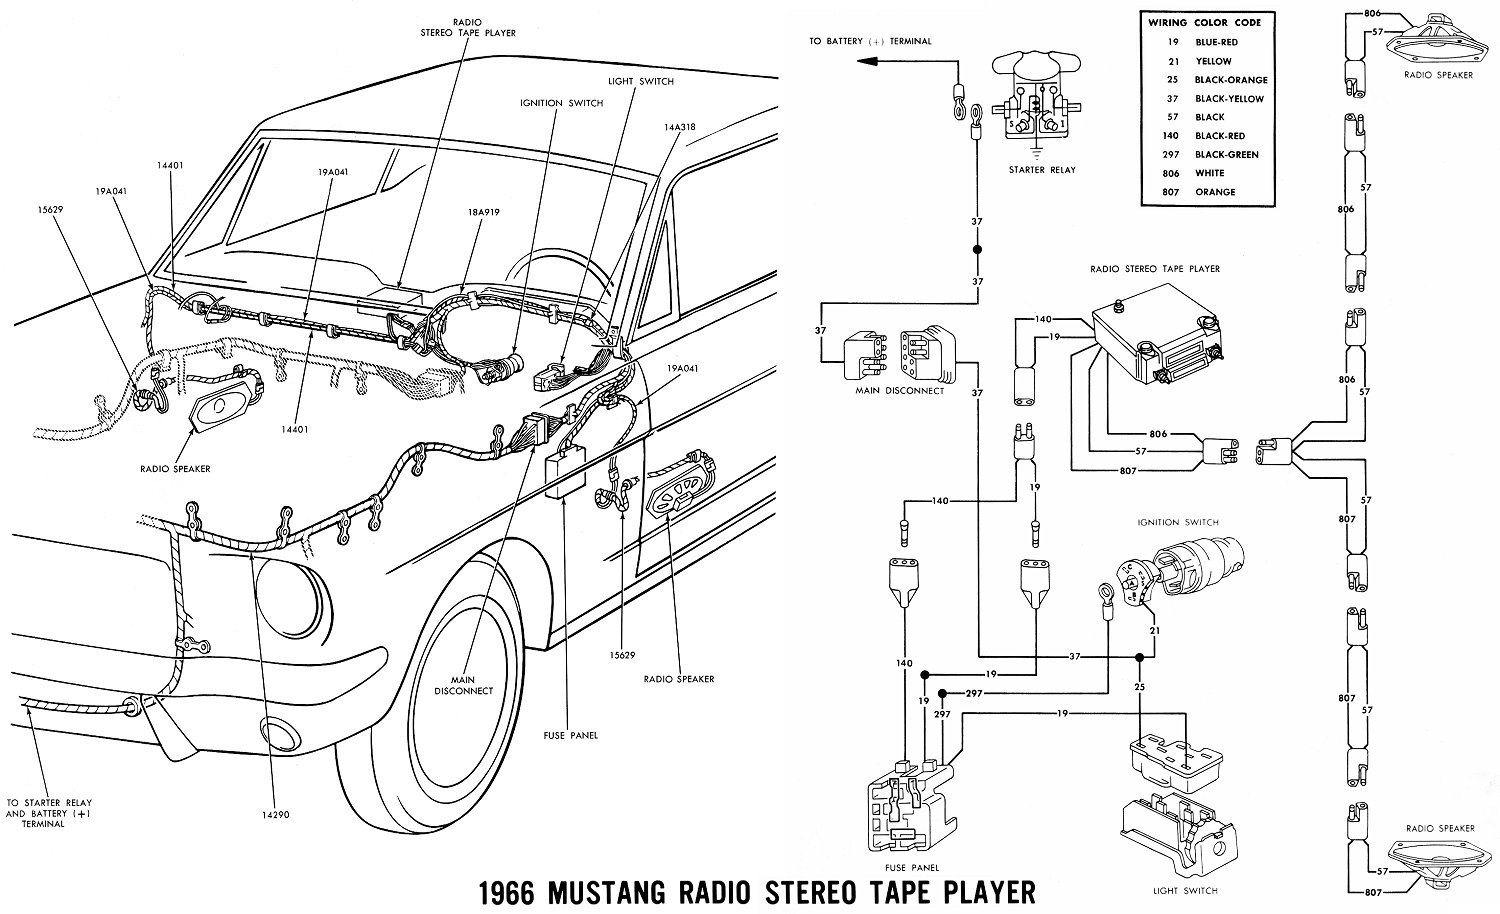 1965 Mustang Wiring Diagrams http://averagejoerestoration.com/resources/mustang-wiring-and-vacuum-diagrams/1966-wiring-diagrams/